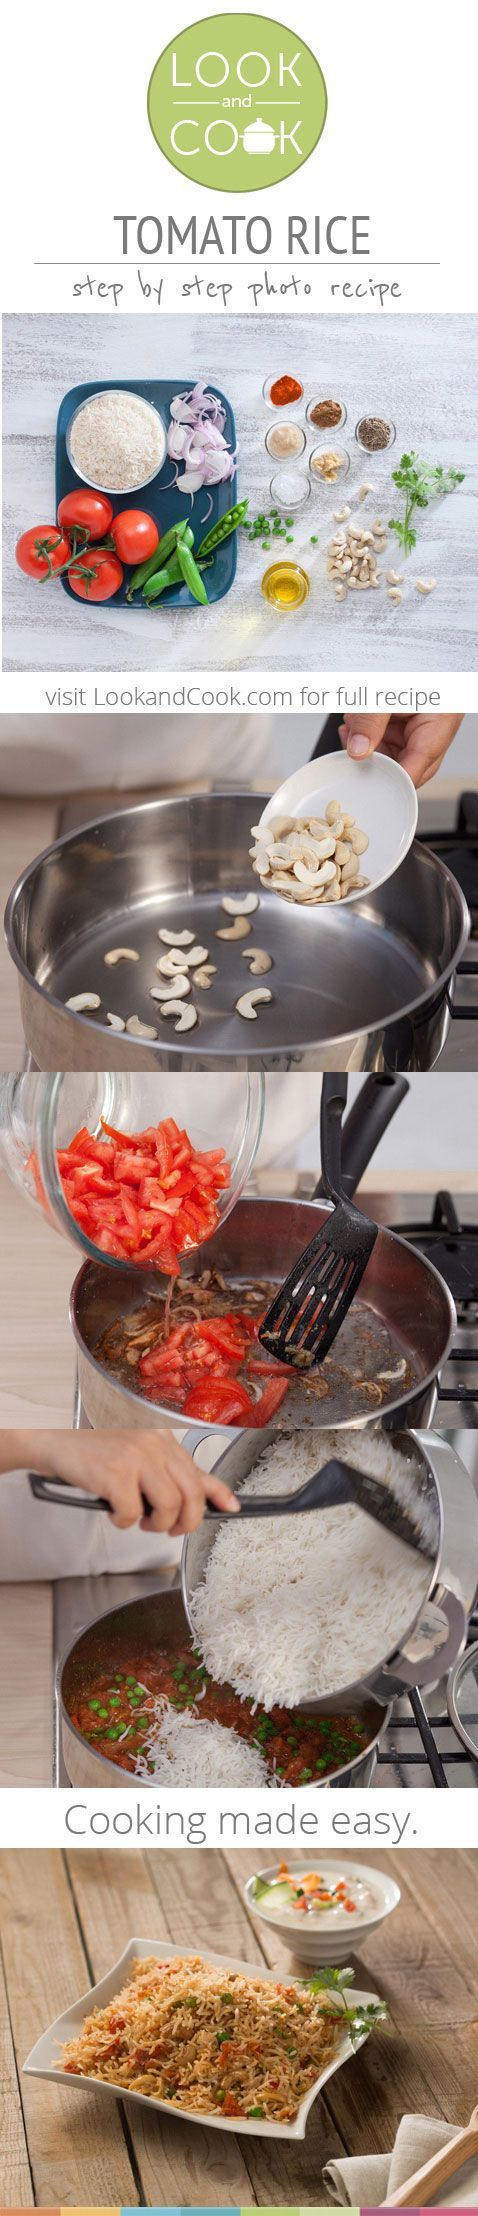 TOMATO RICE (LC 14058) - Tomato tice, a South Indian rice recipe is popular and made with fresh tomatoes